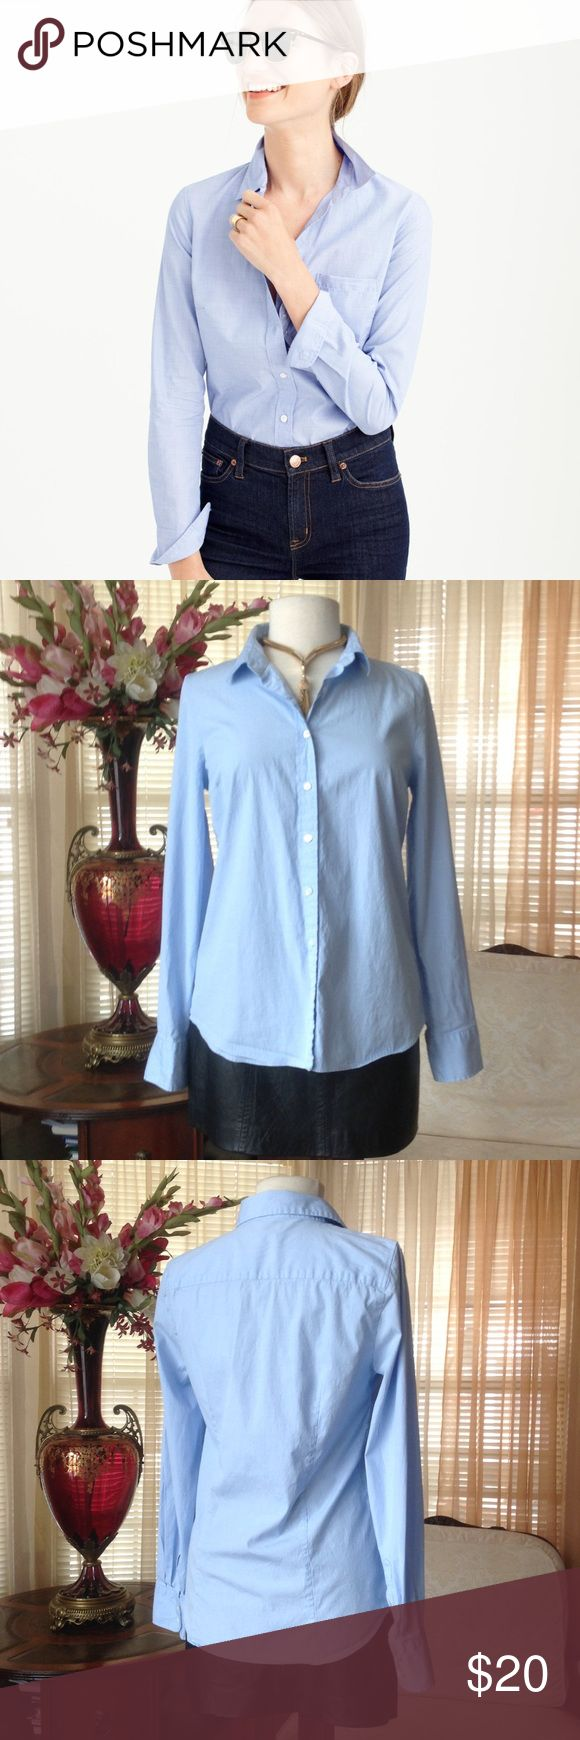 J. Crew light blue shirt In excellent condition. No defects found. Worn probably just once. Model is not wearing the exact item but similar and also from J Crew collection.                              c J. Crew Tops